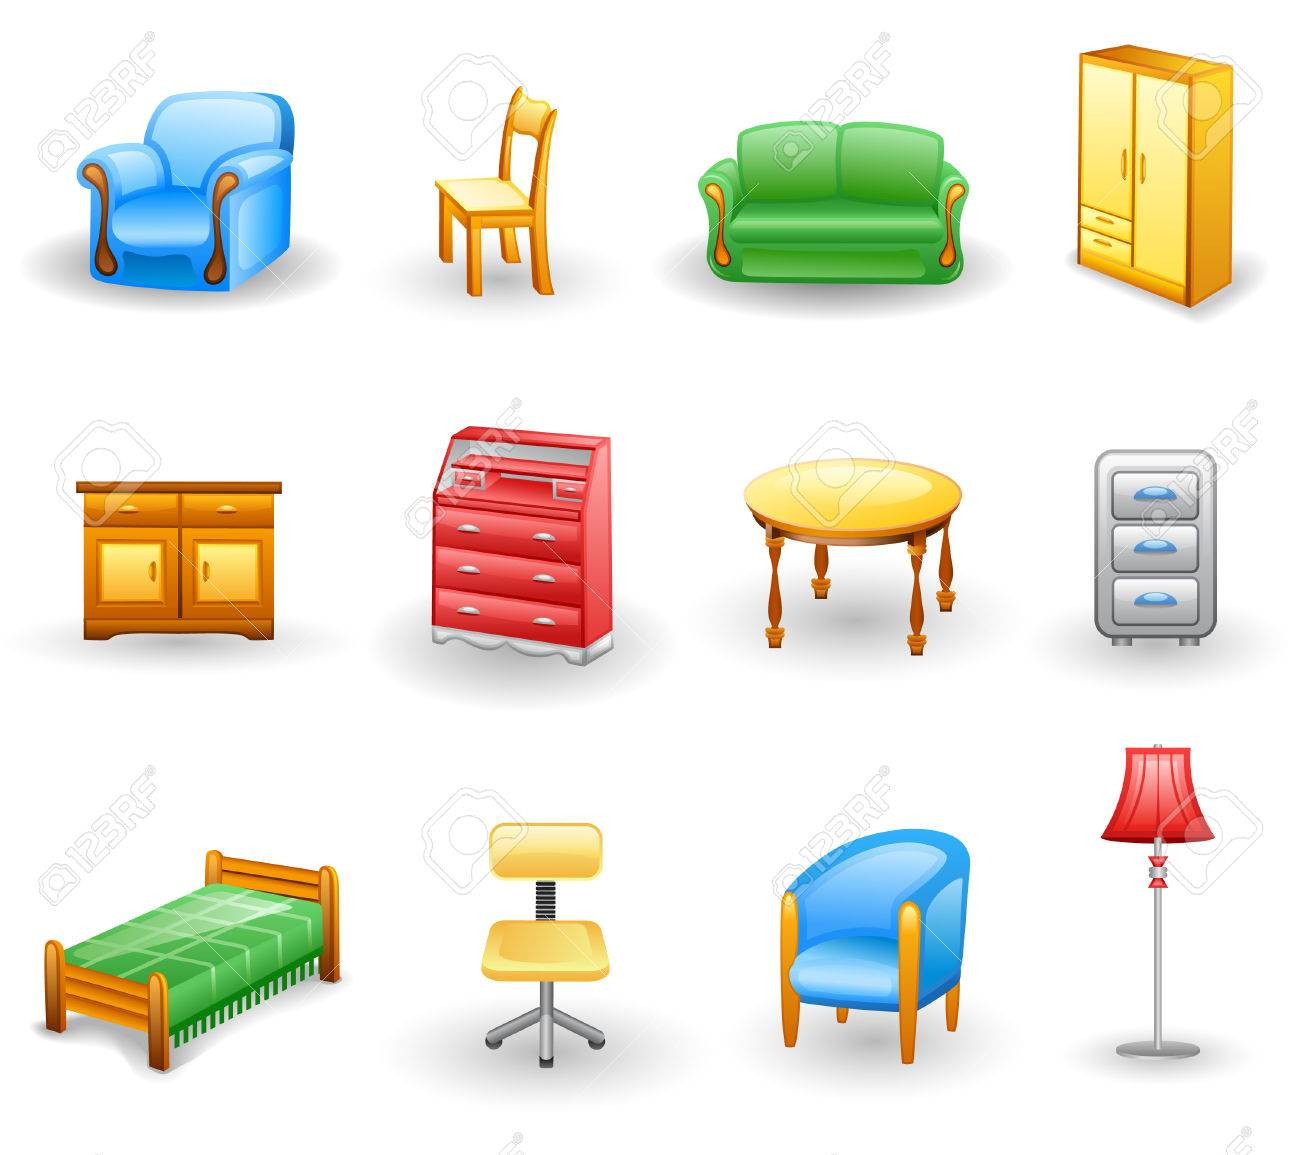 Furniture icon set.  Isolated on a white background. Stock Vector - 7115471